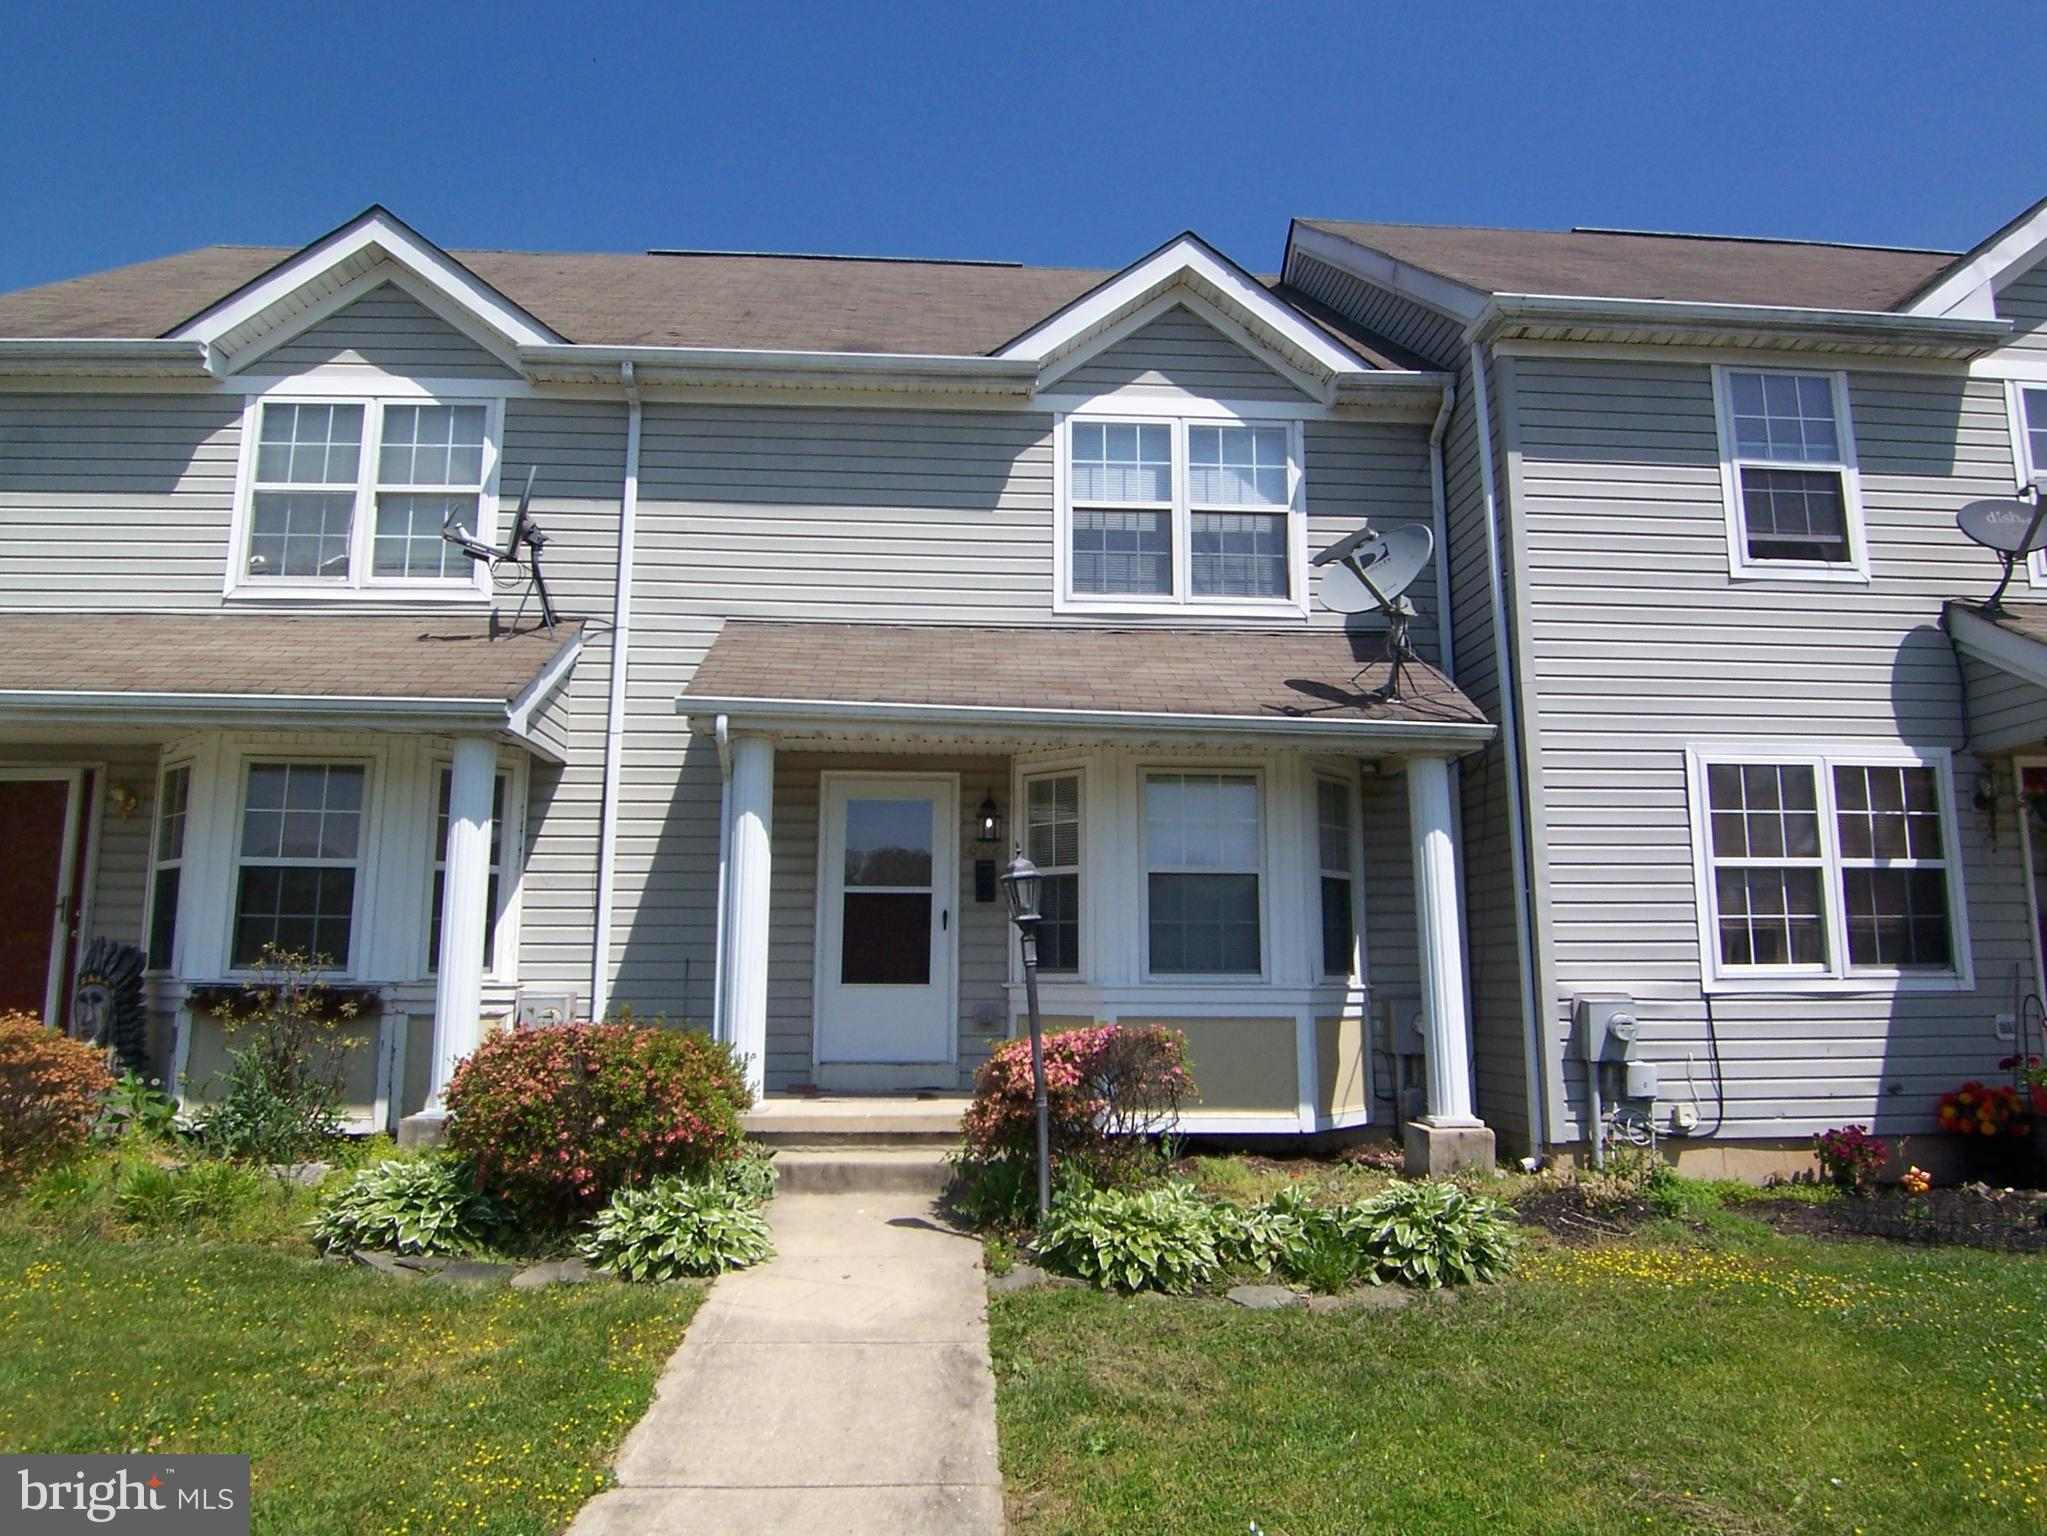 Great 3 bedroom 1.5 bath town home! Pass through window in kitchen to make entertaining easy! NEW ca